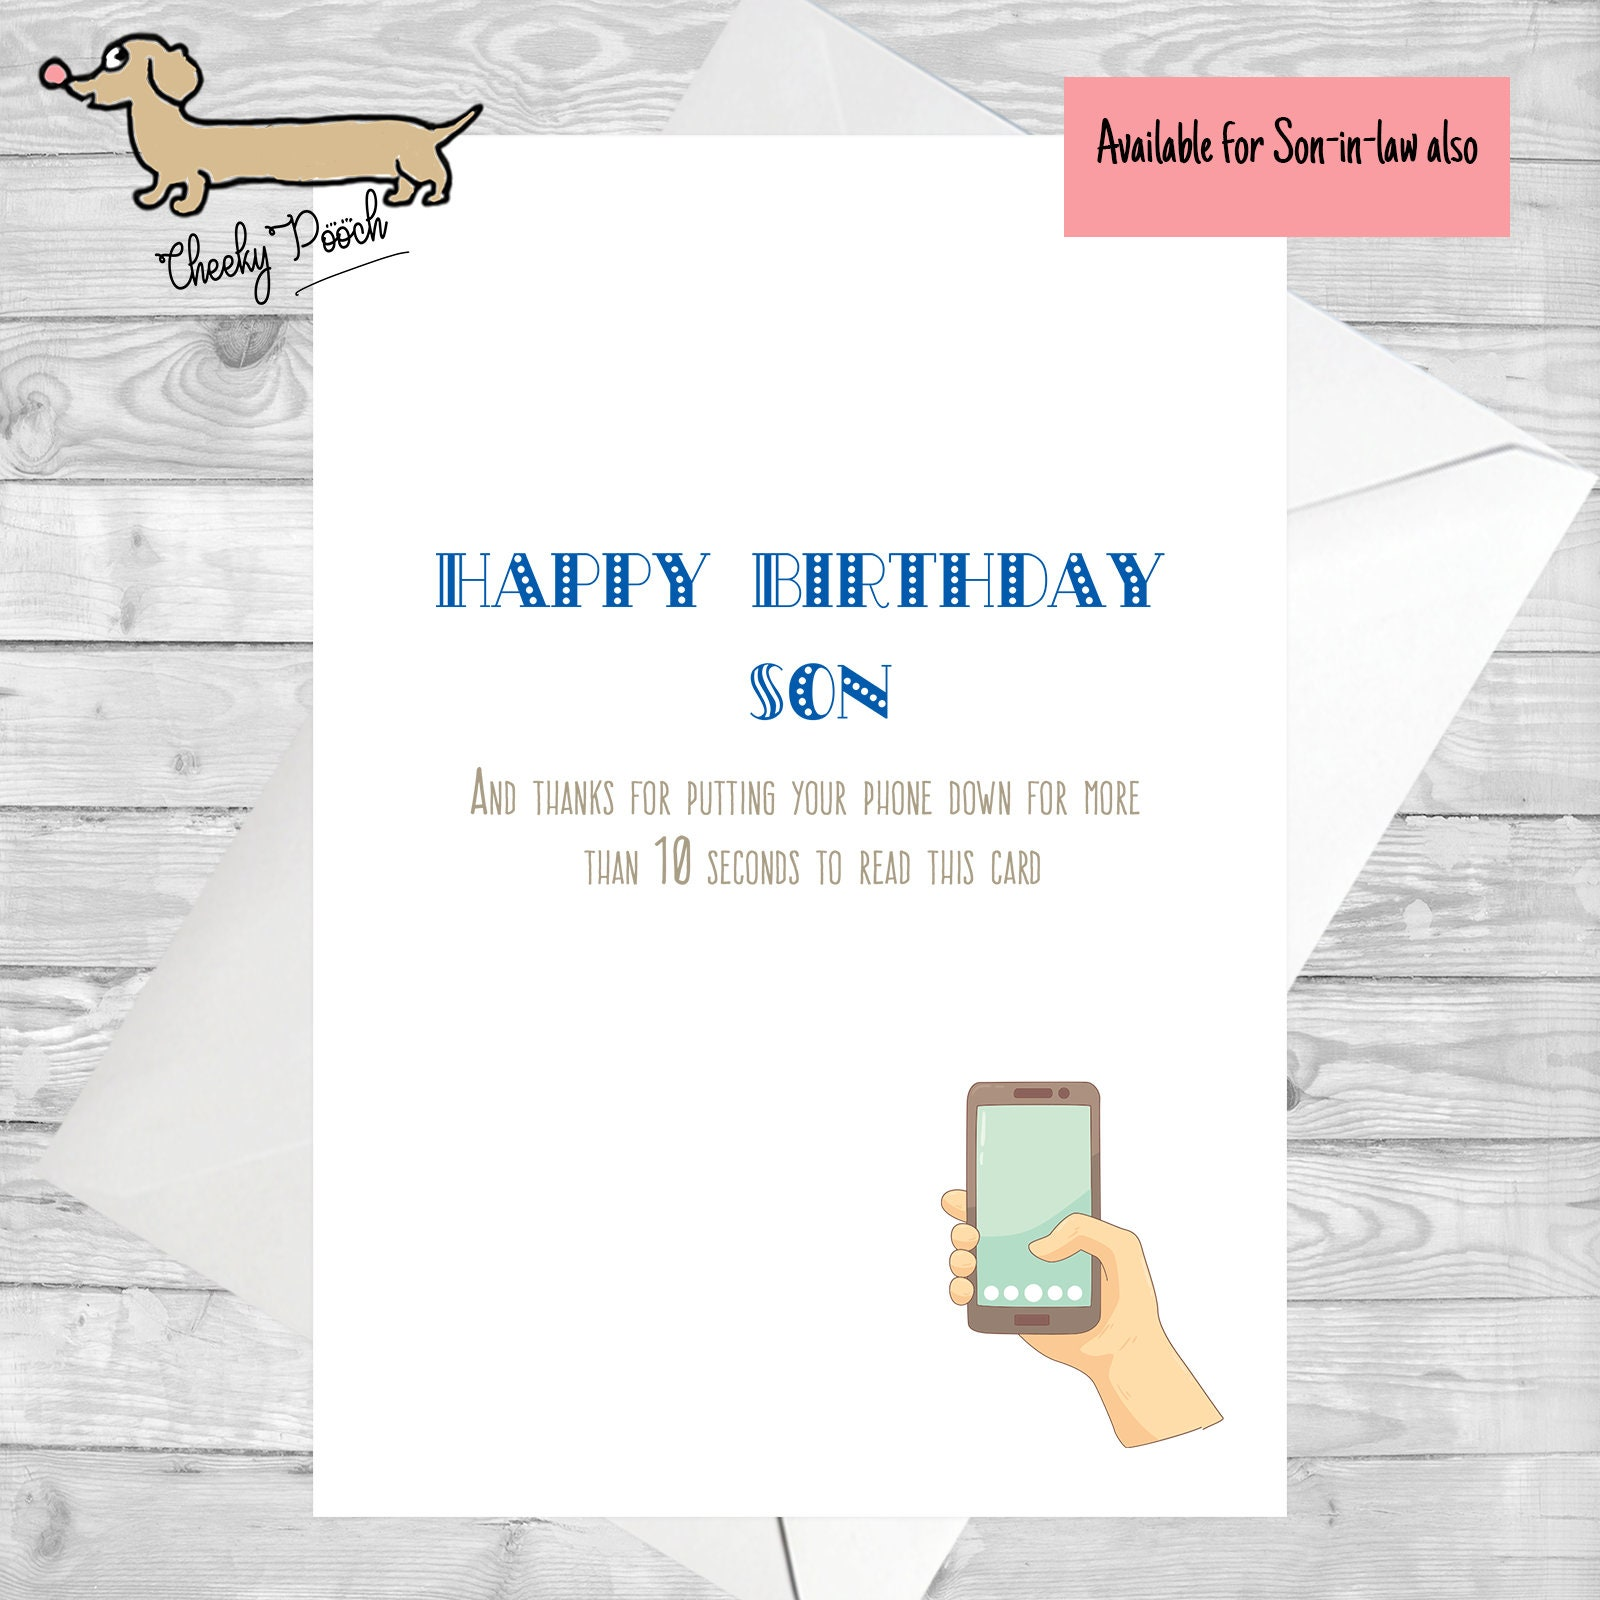 Funny Cards Card For Son In Law Birthday Cheeky Phone